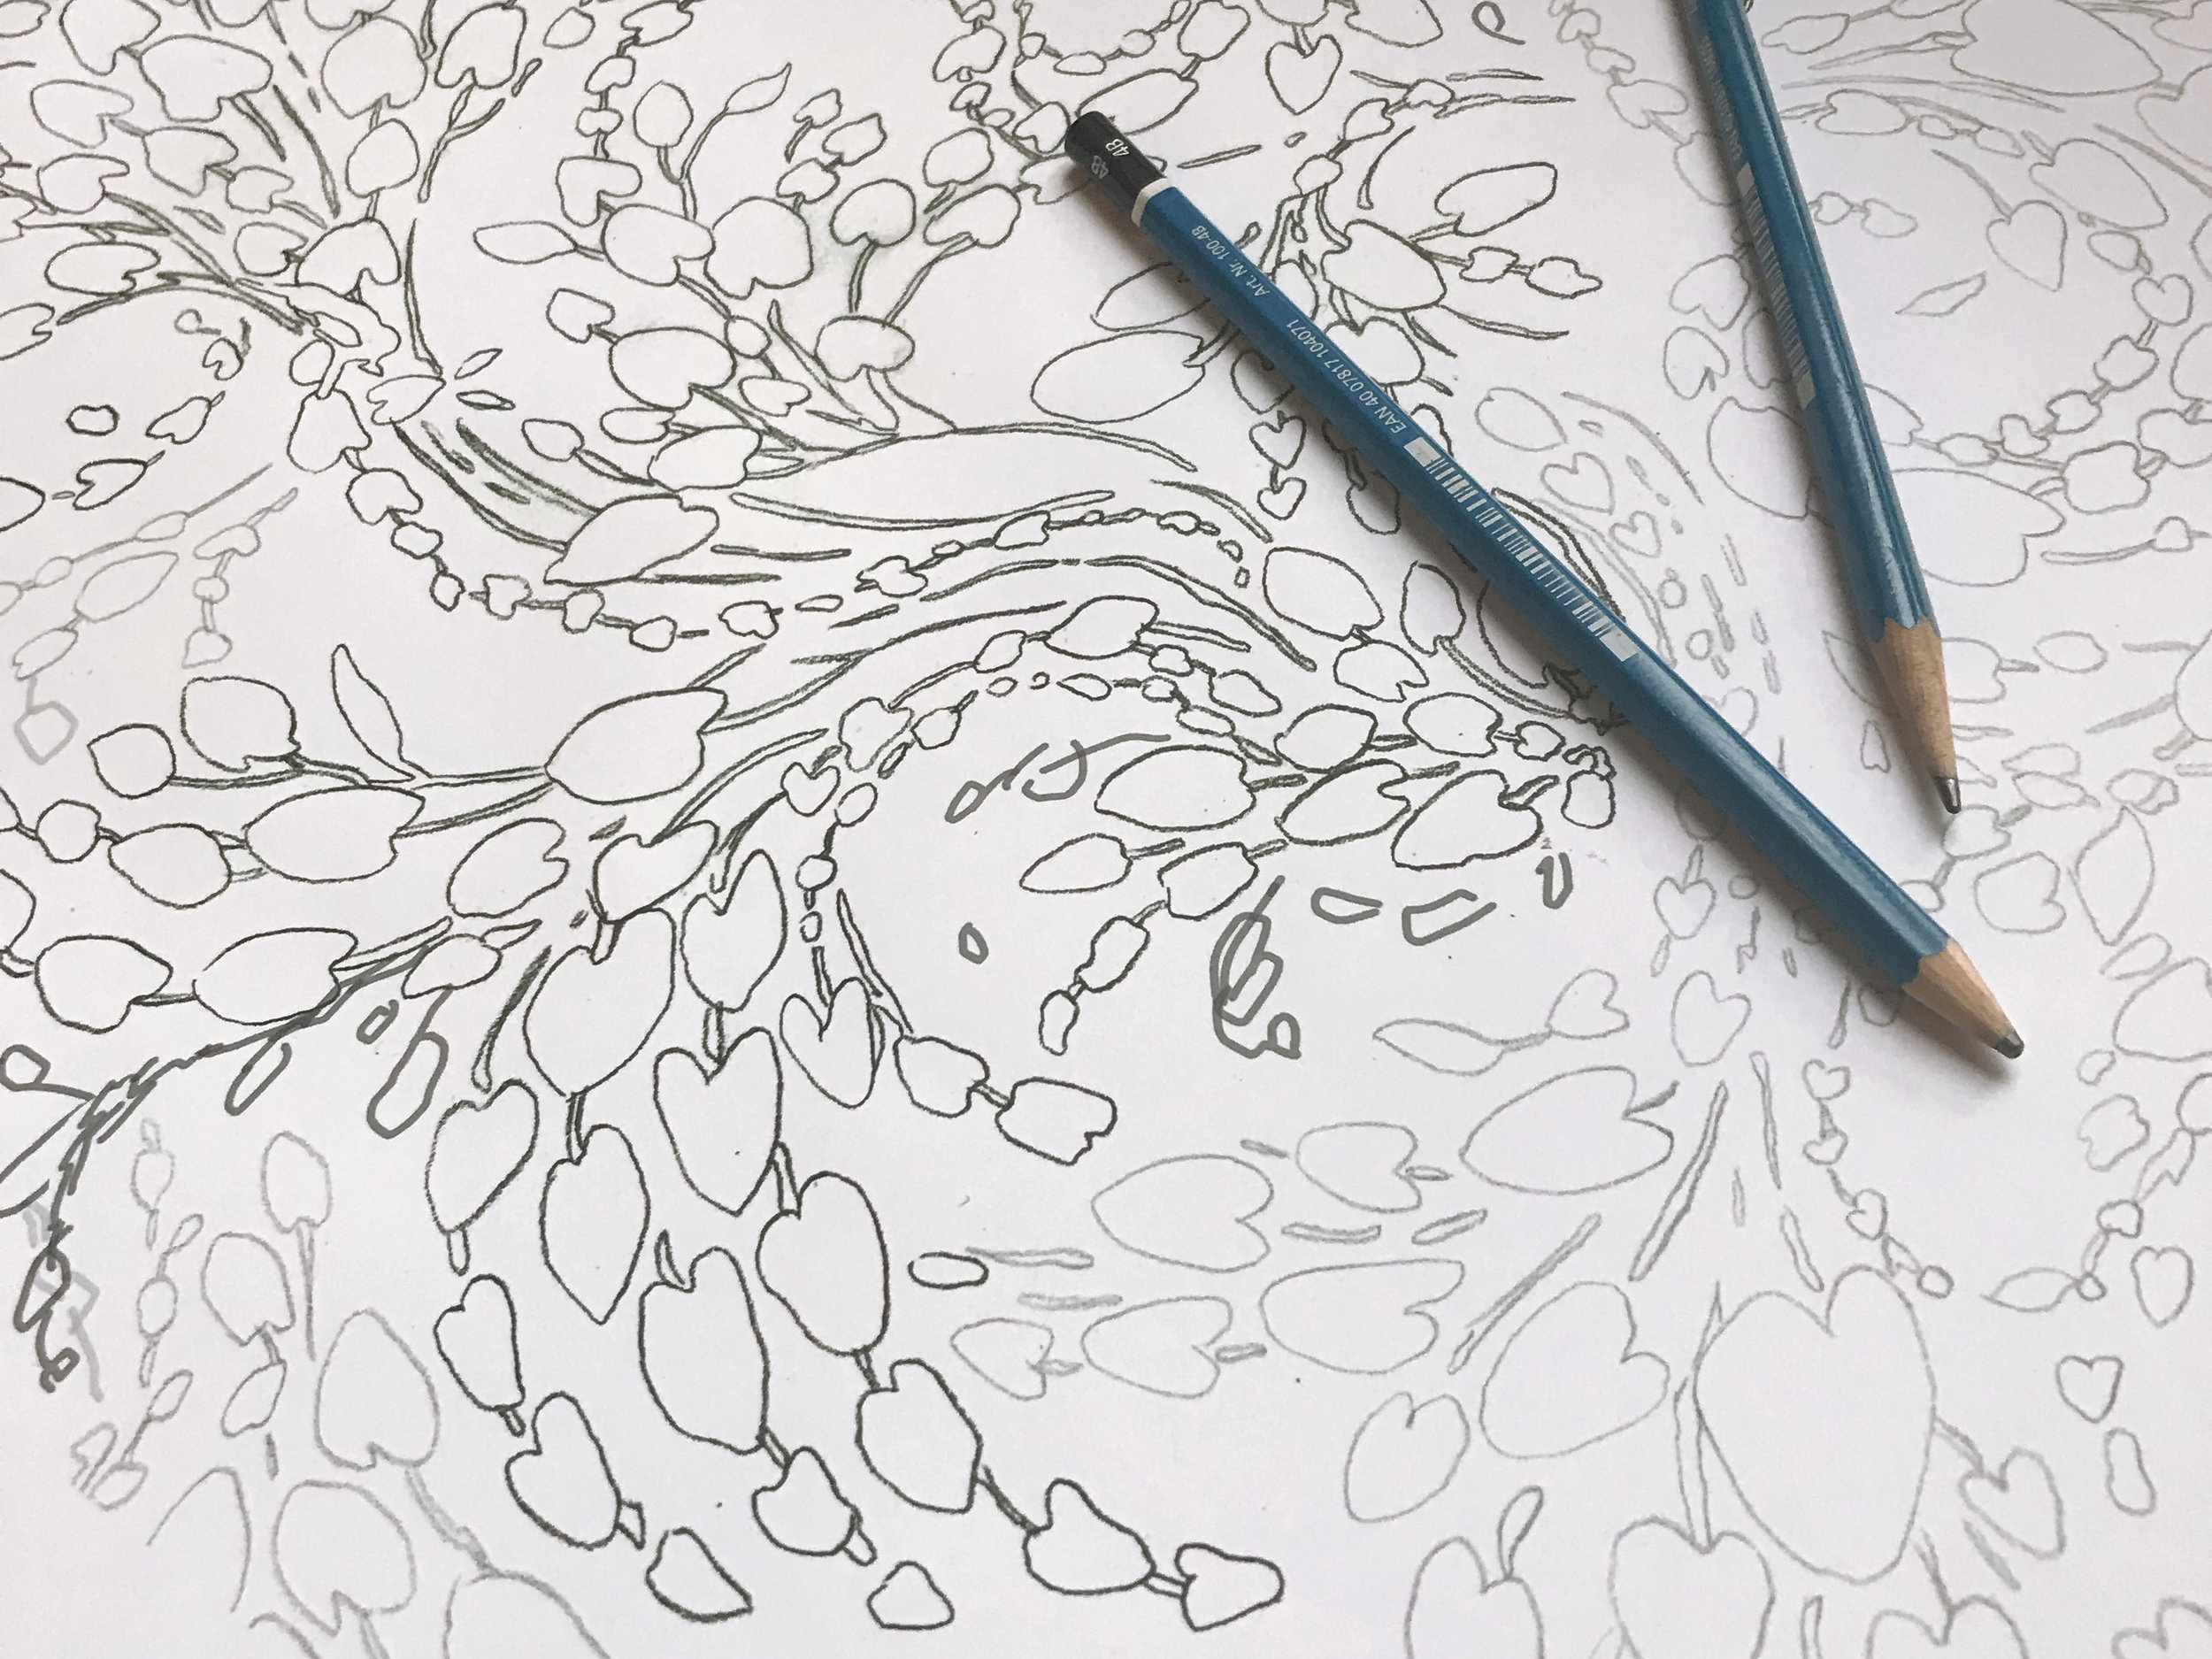 Drawing the layout in pencil